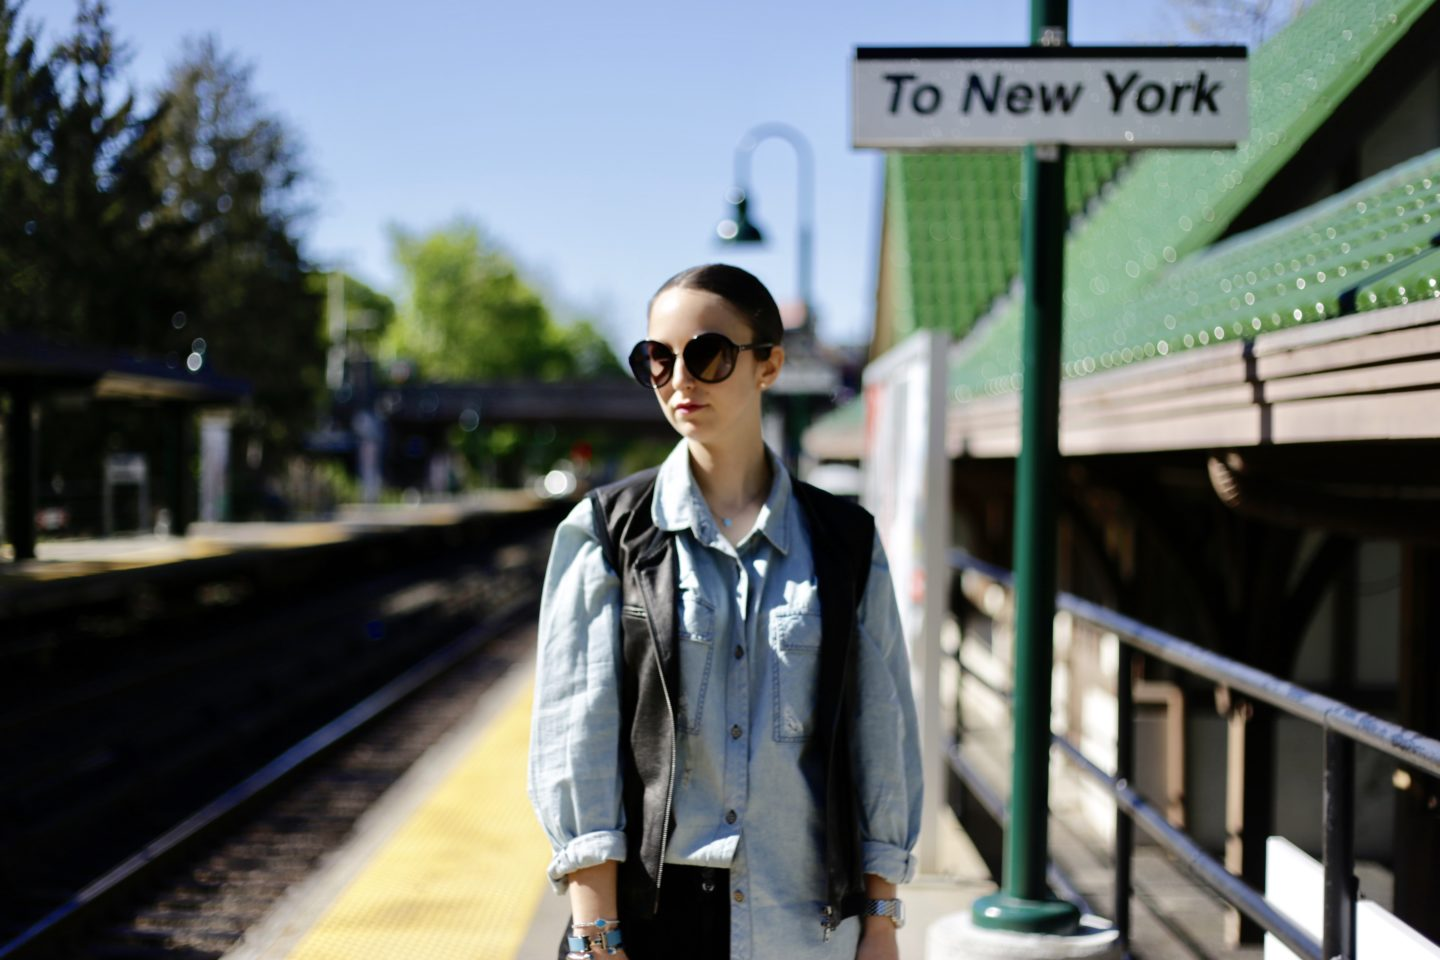 train station-commuter-new york-style